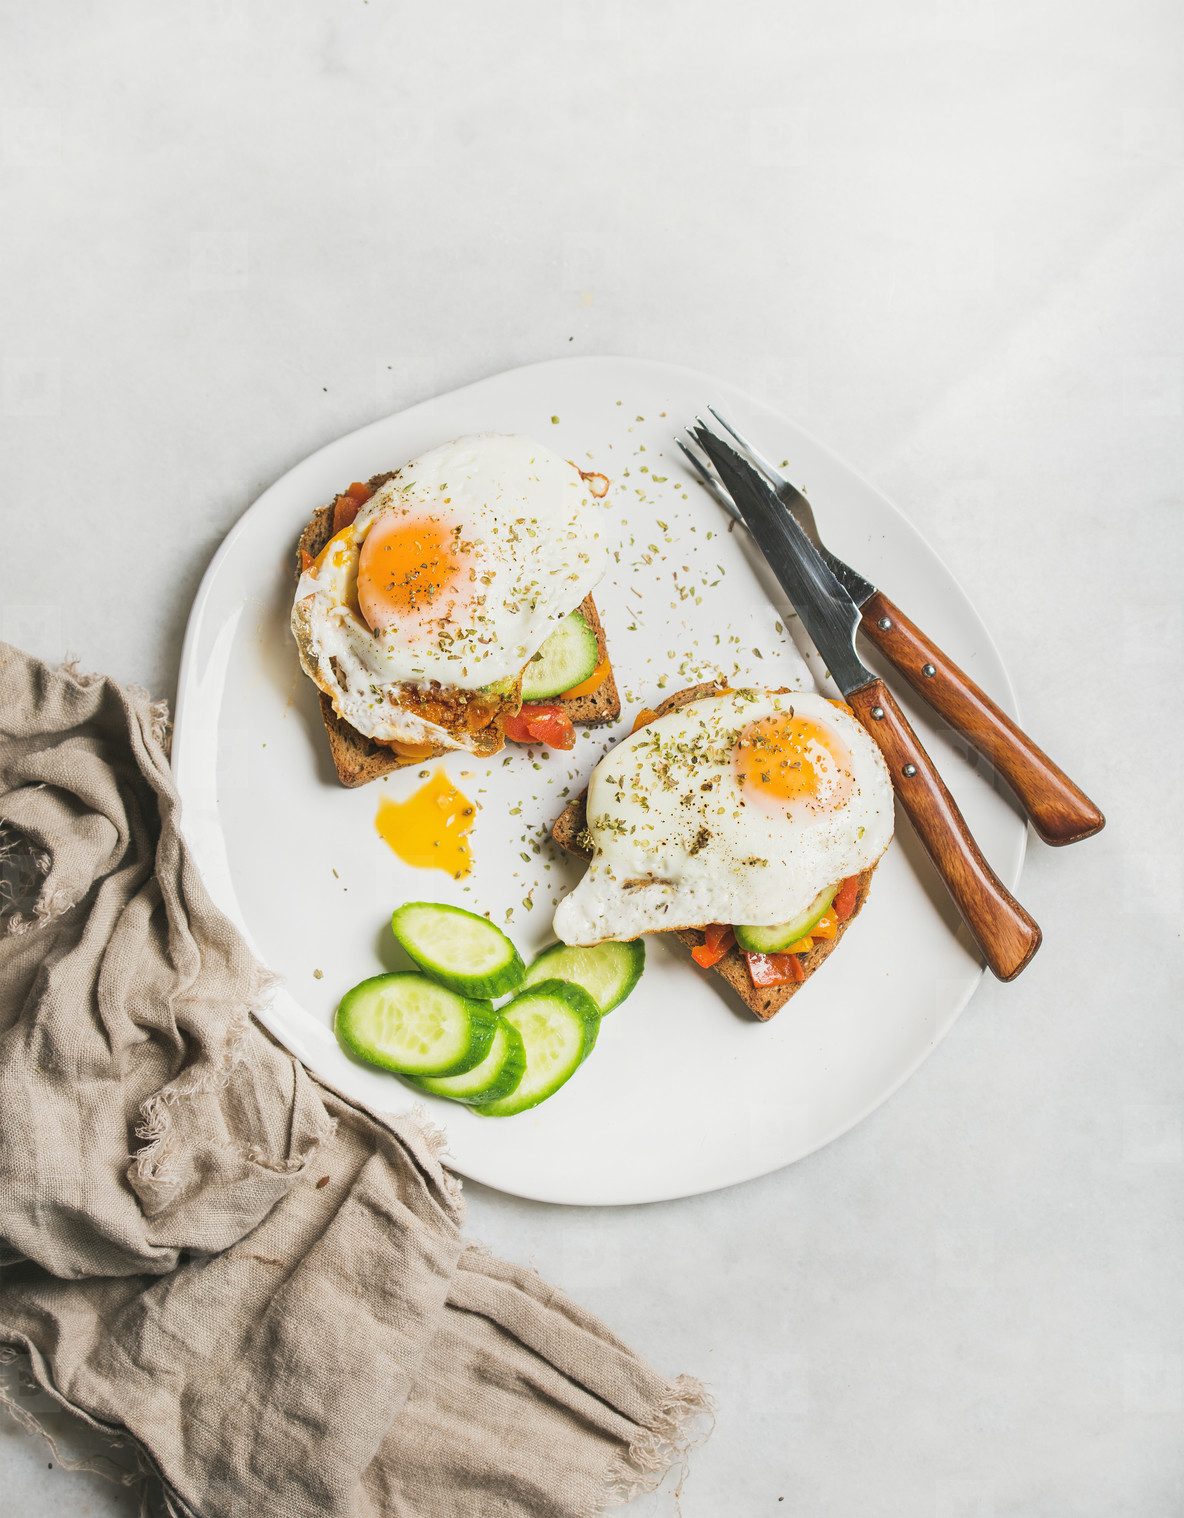 Fried Egg On A Plate Stock Photo - Image: 38897257  |Fried Eggs On A Plate